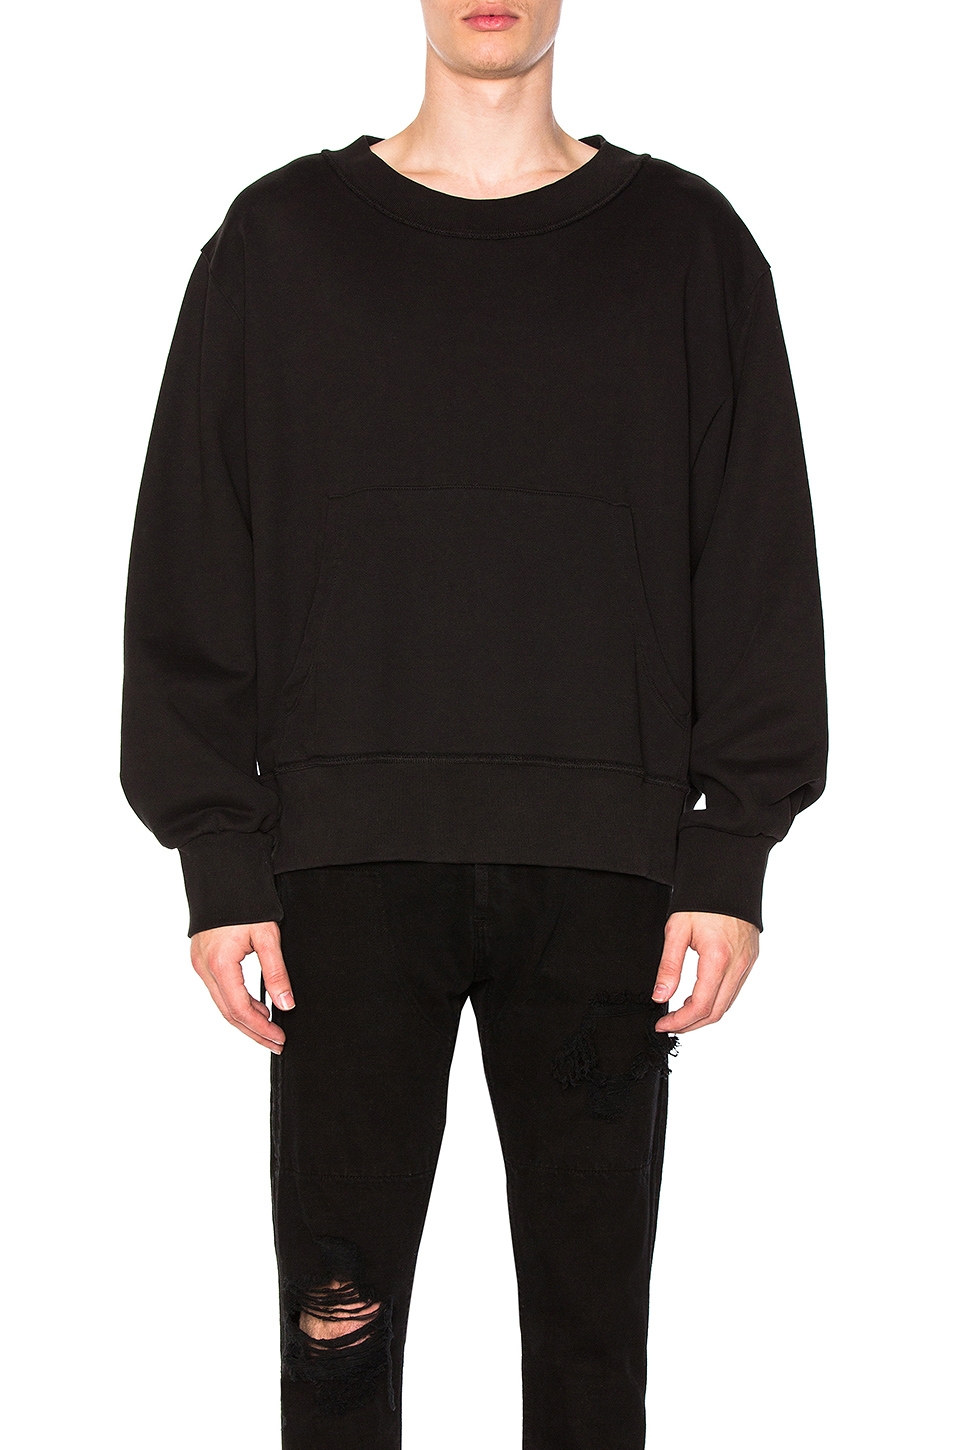 Mr. Completely Double Pocket Crewneck in Black